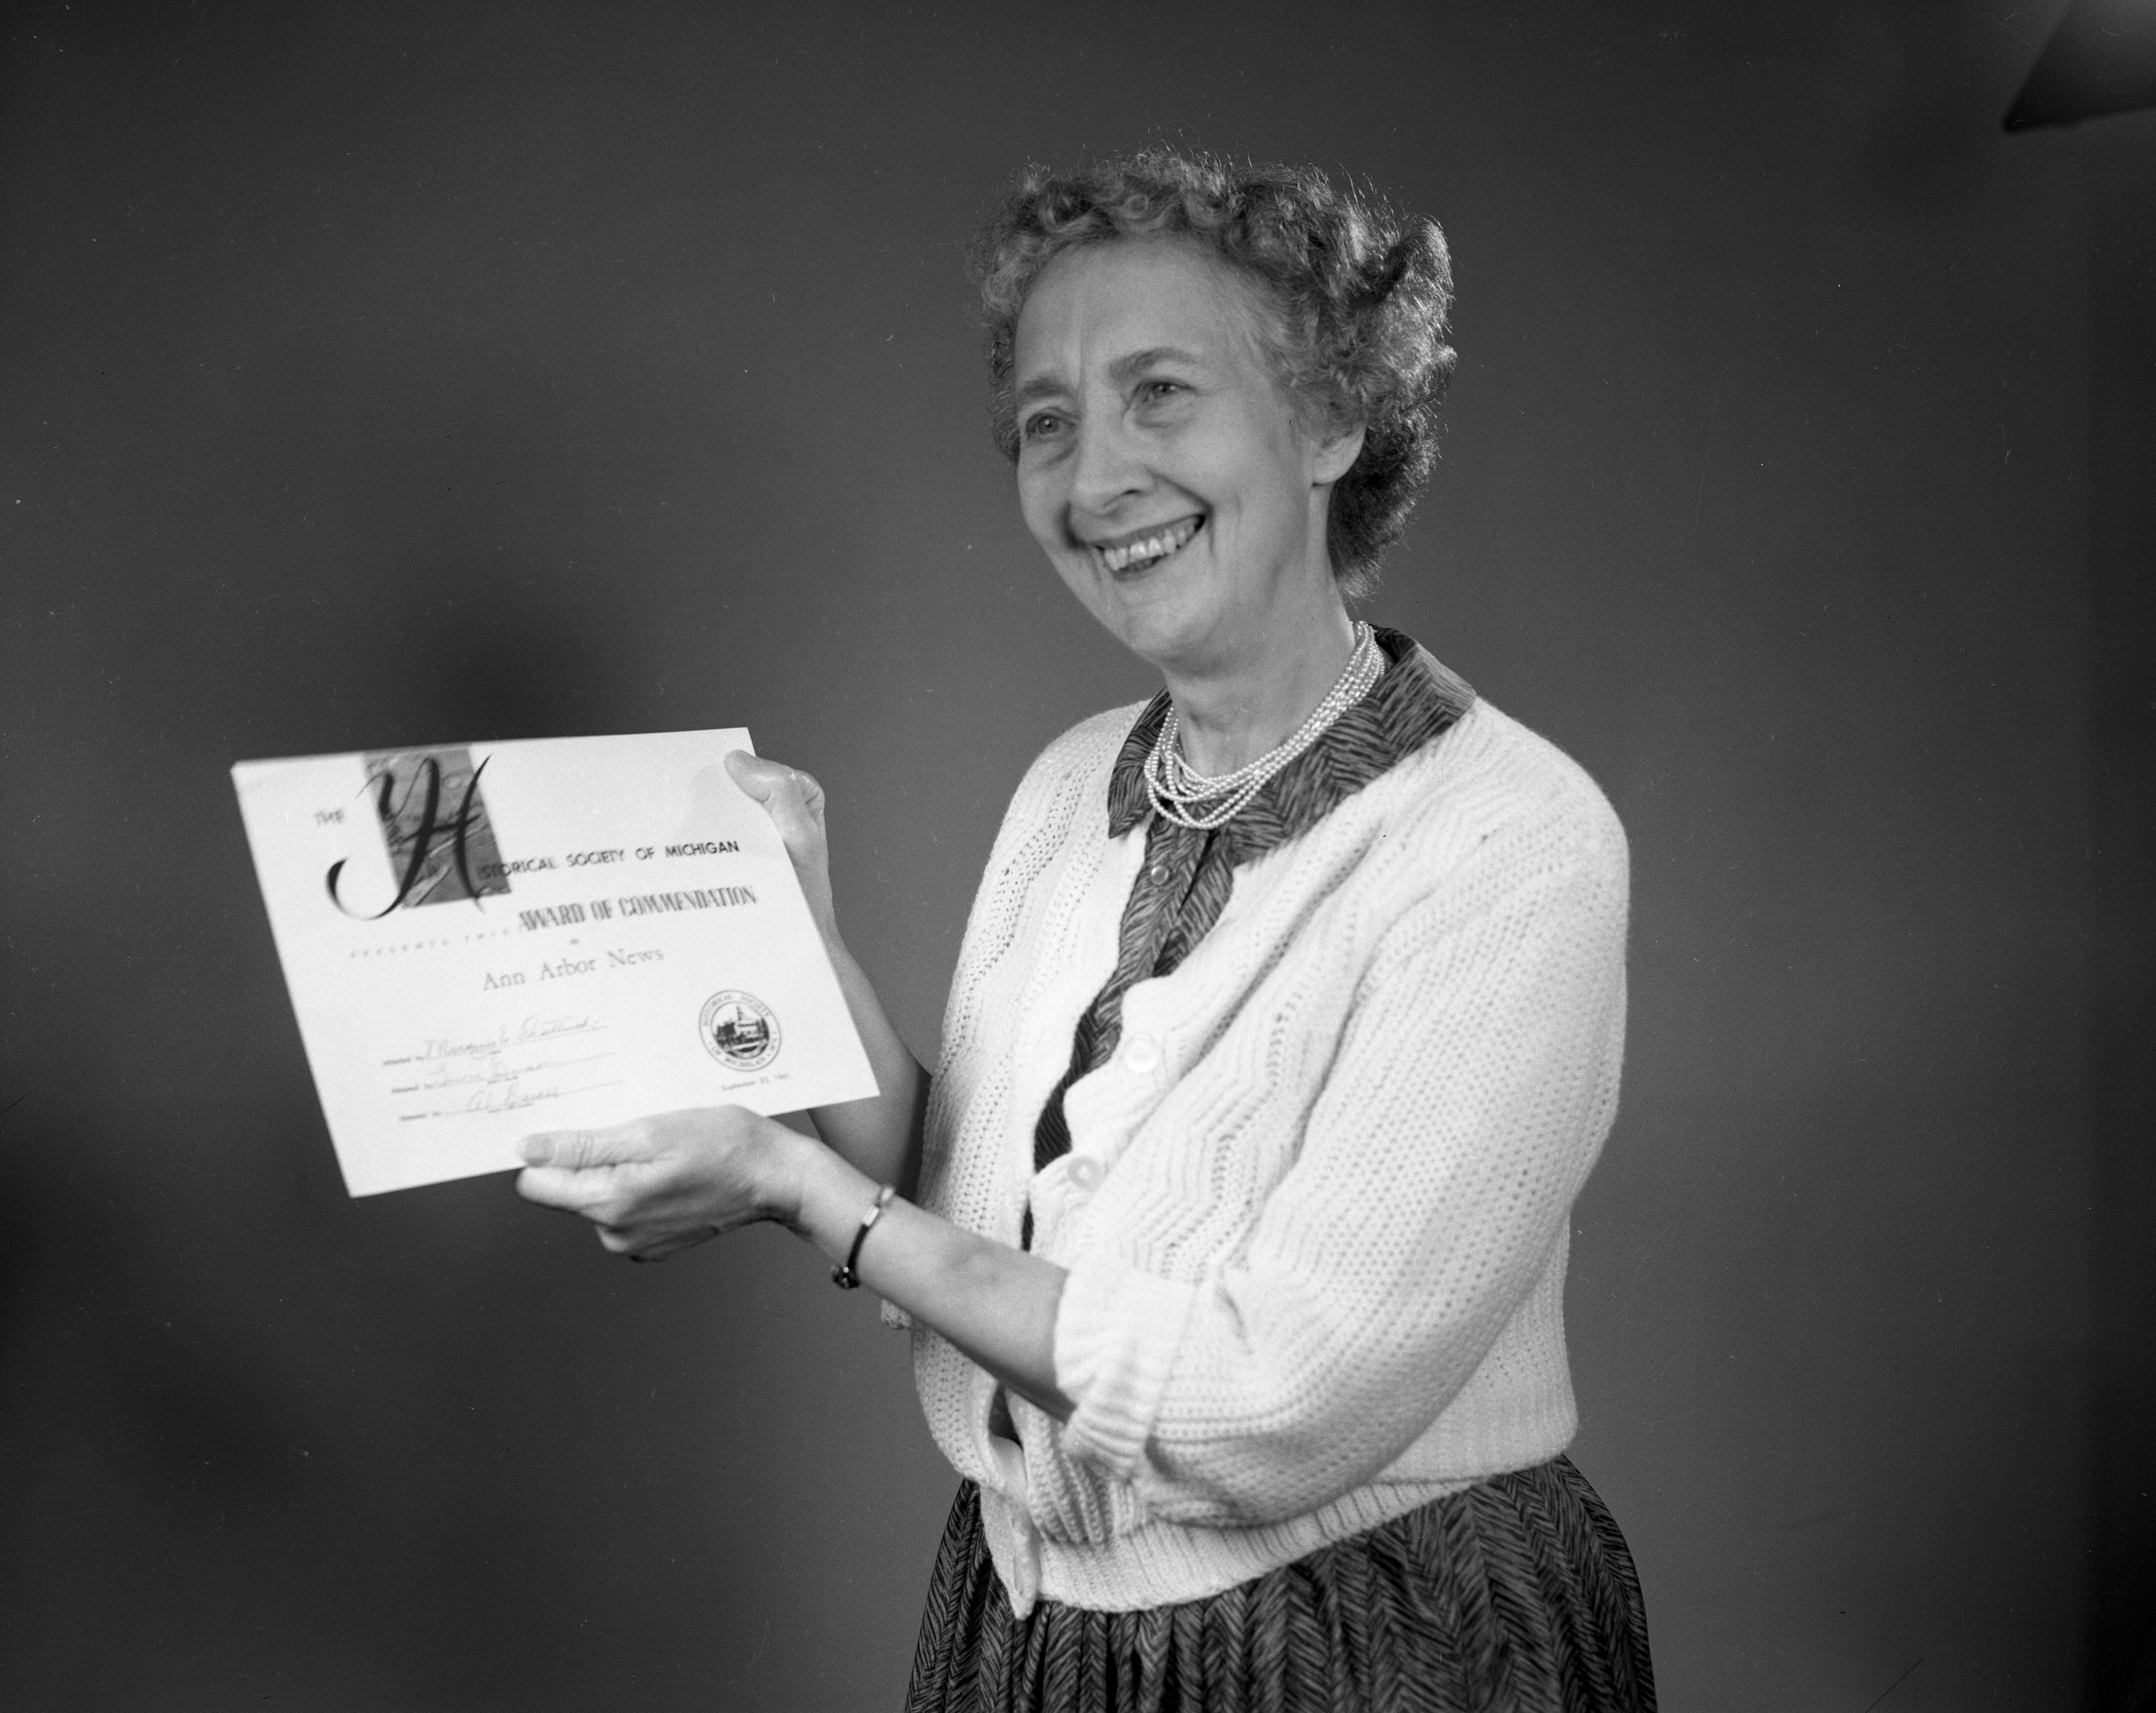 Local Historian Lela Duff All Smiles After Winning Historical Society of Michigan Award For Ann Arbor Yesterdays Series, September 1961 image